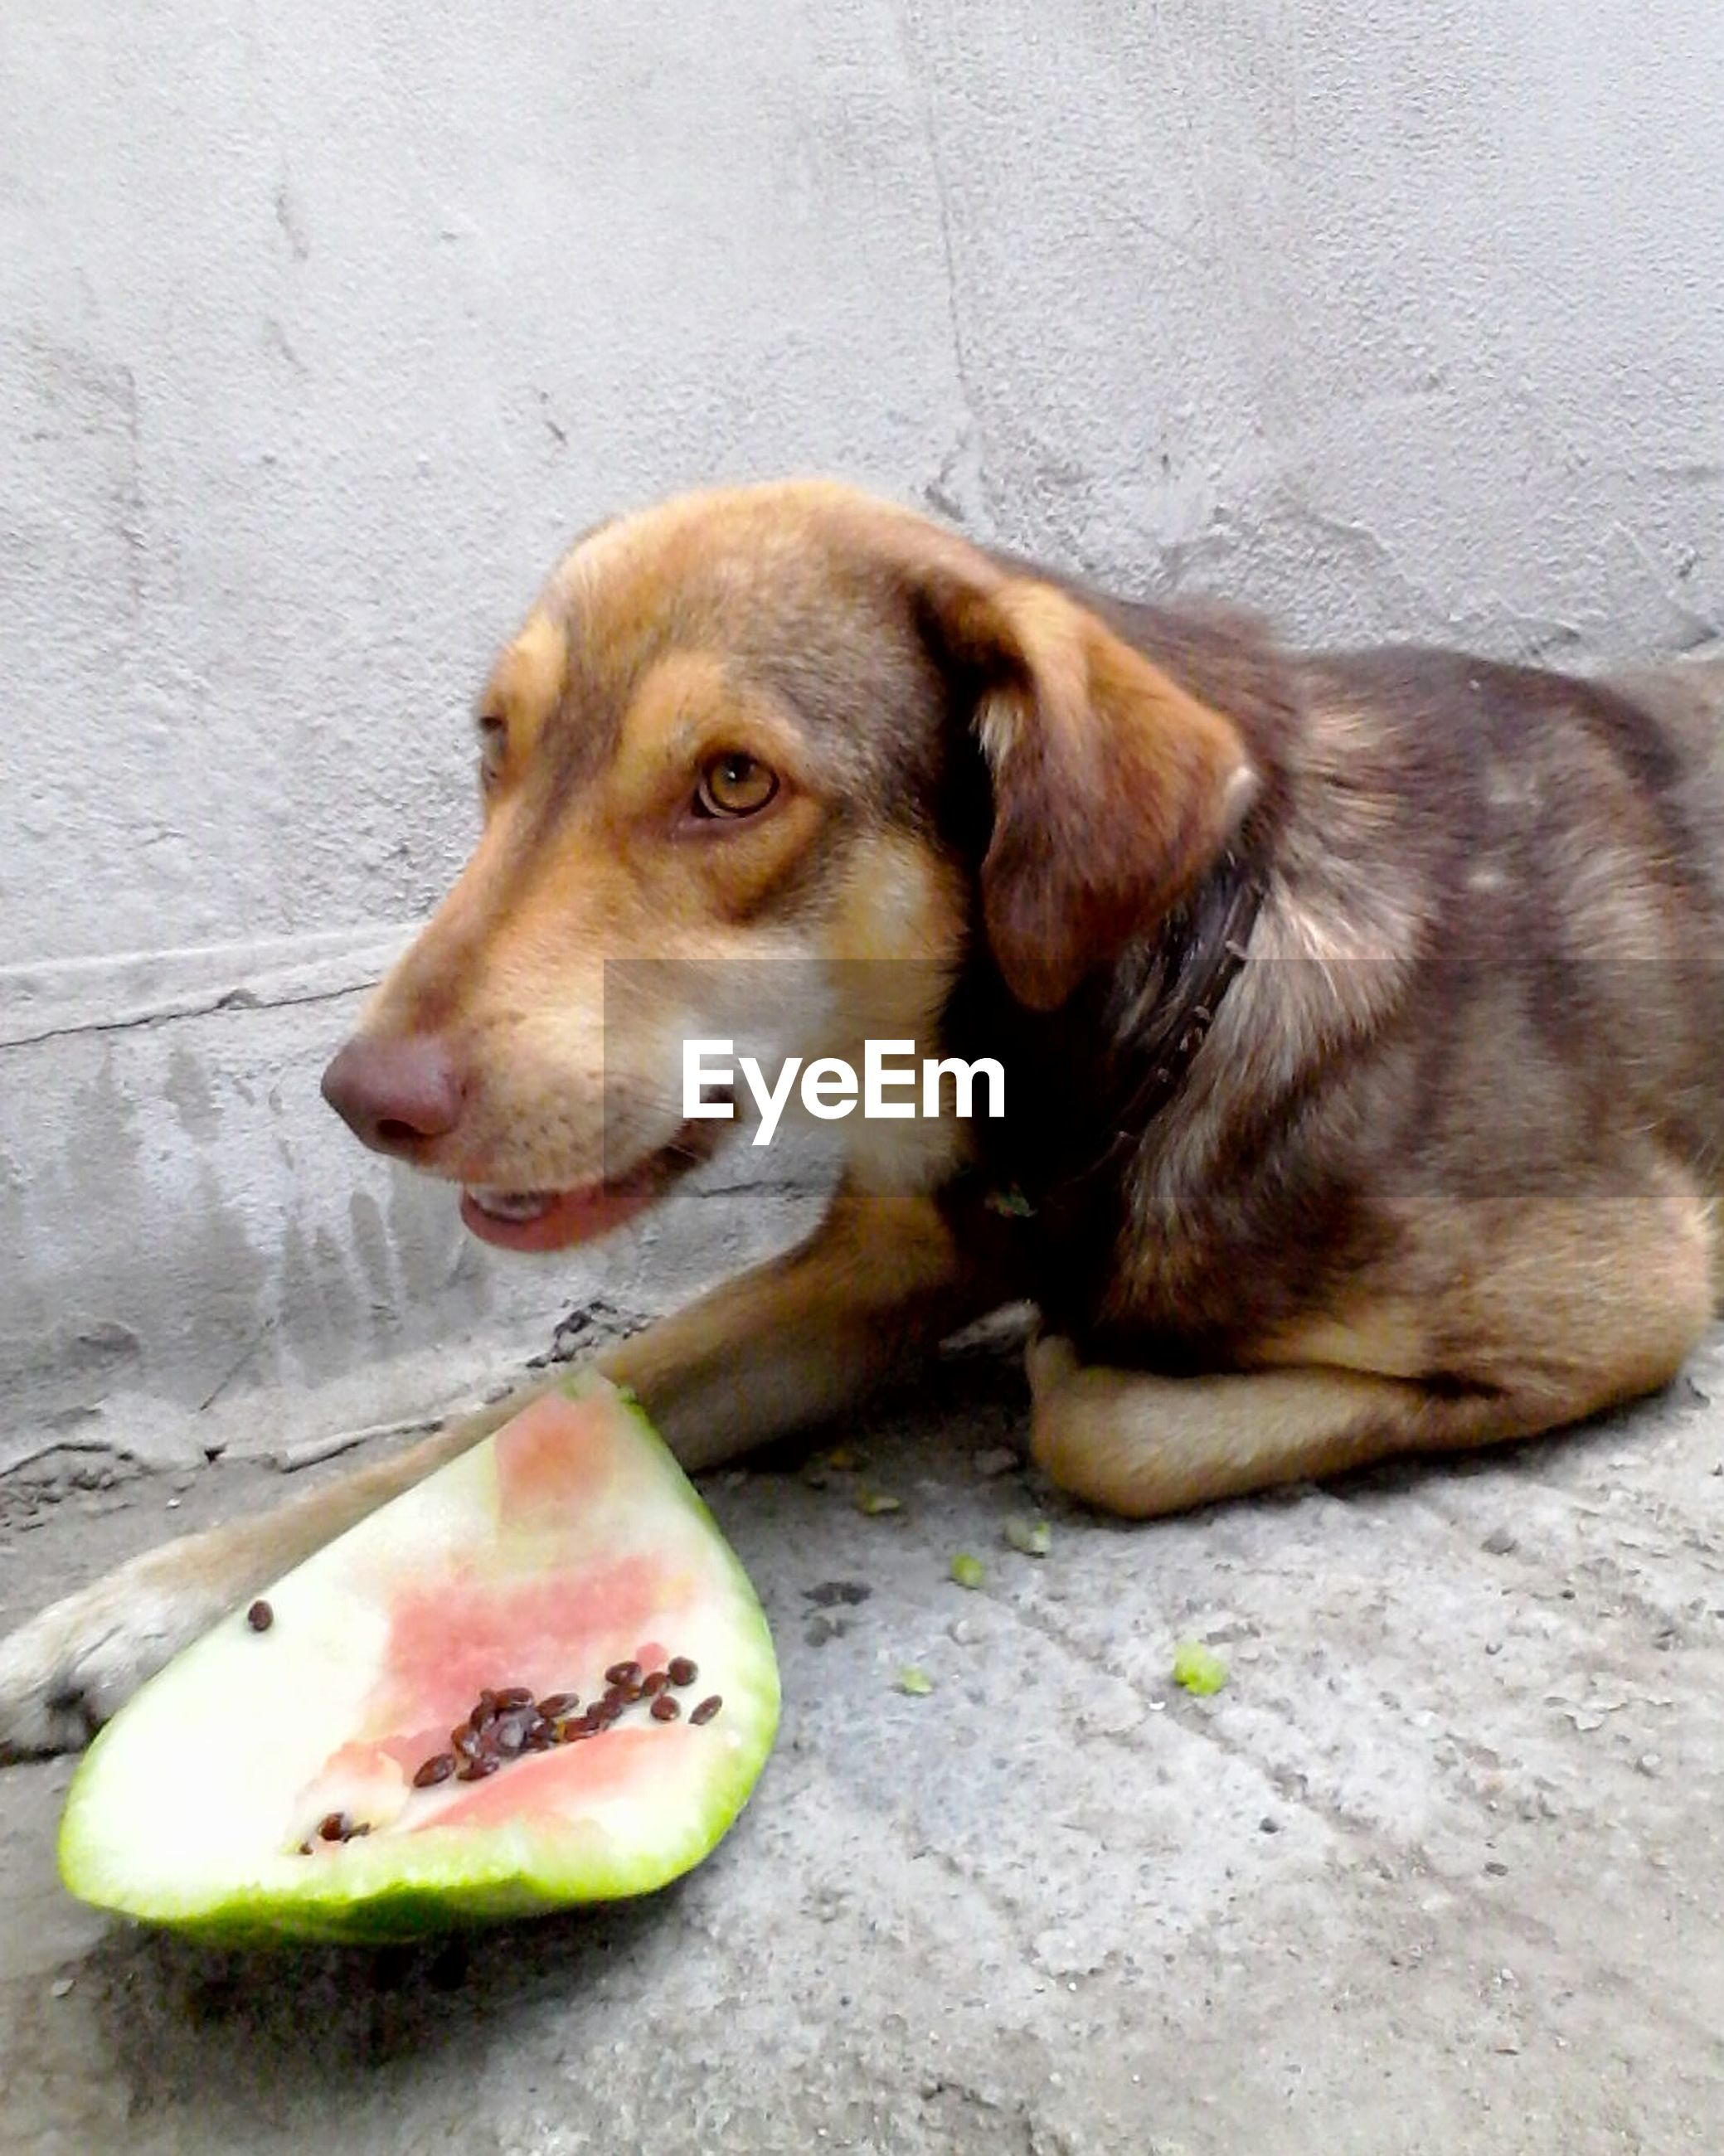 Dog with peeling of watermelon relaxing on field